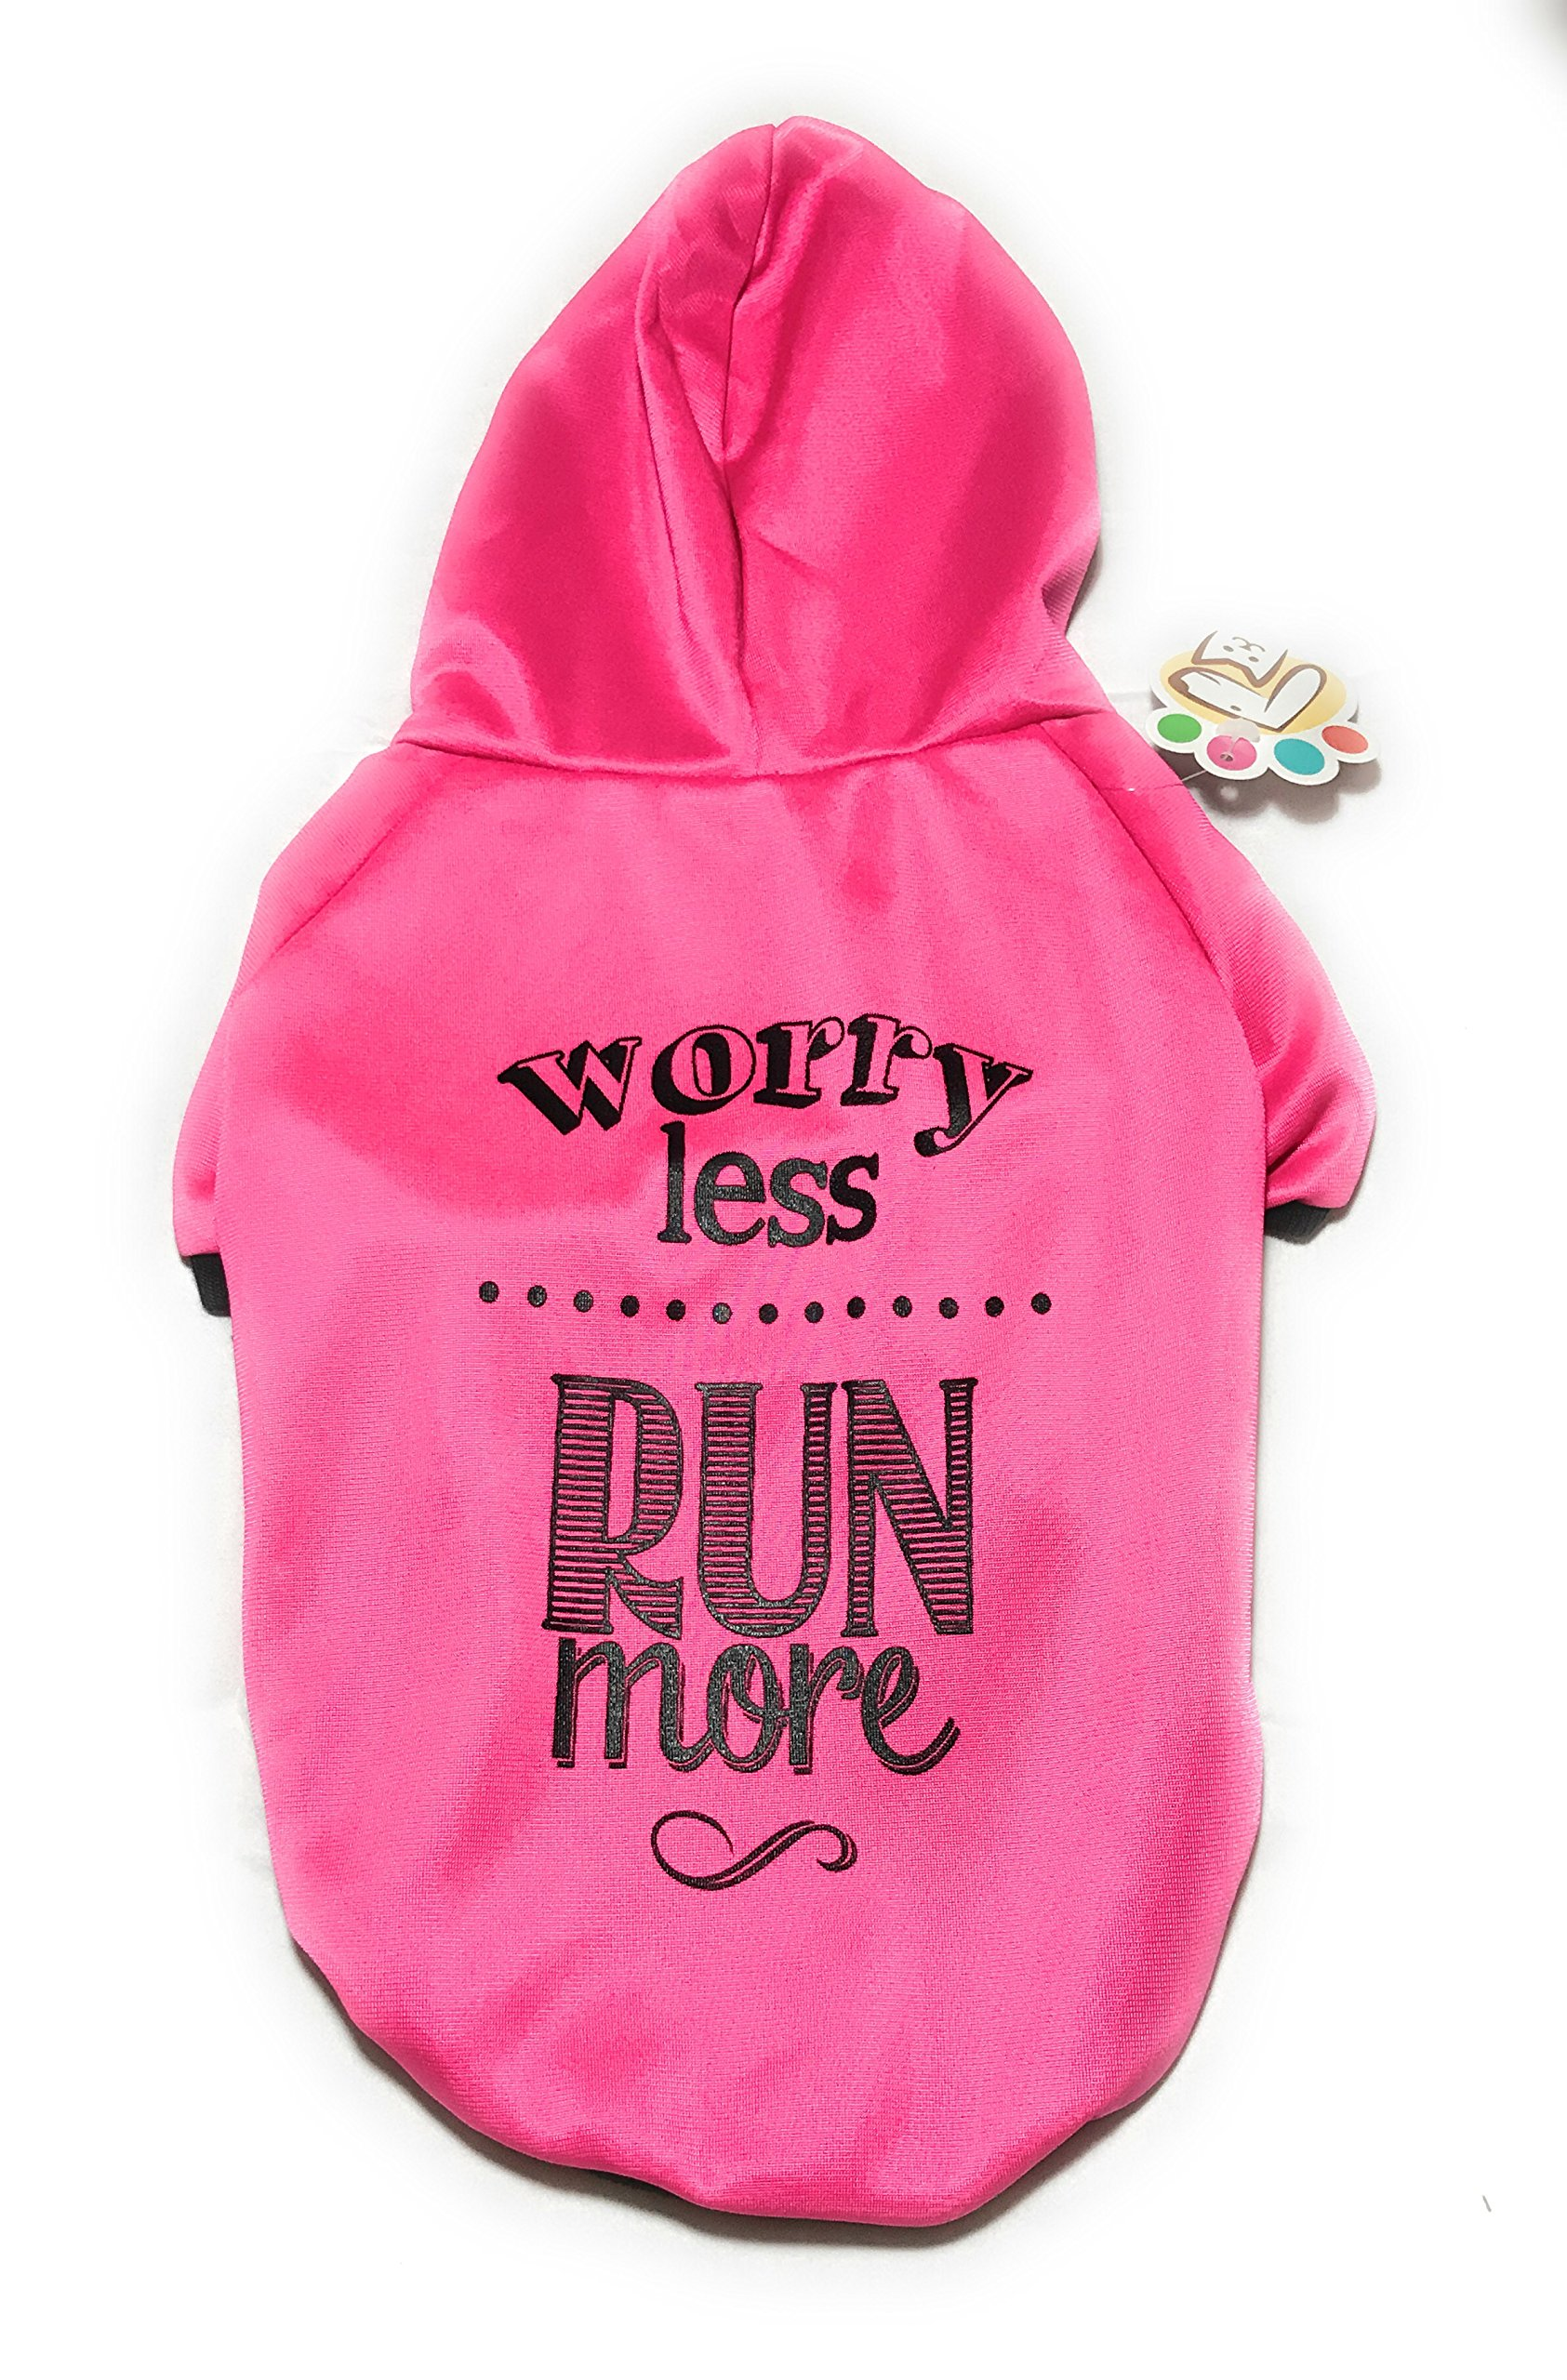 Dog or Puppy Sweater Hoodie ´Worry Less Run More´ Pink for Large or Extra Large Pets XL size/ Extra Large Fashion and Funny Hoodie Shirt Petmont Brand For Boys Or Girls